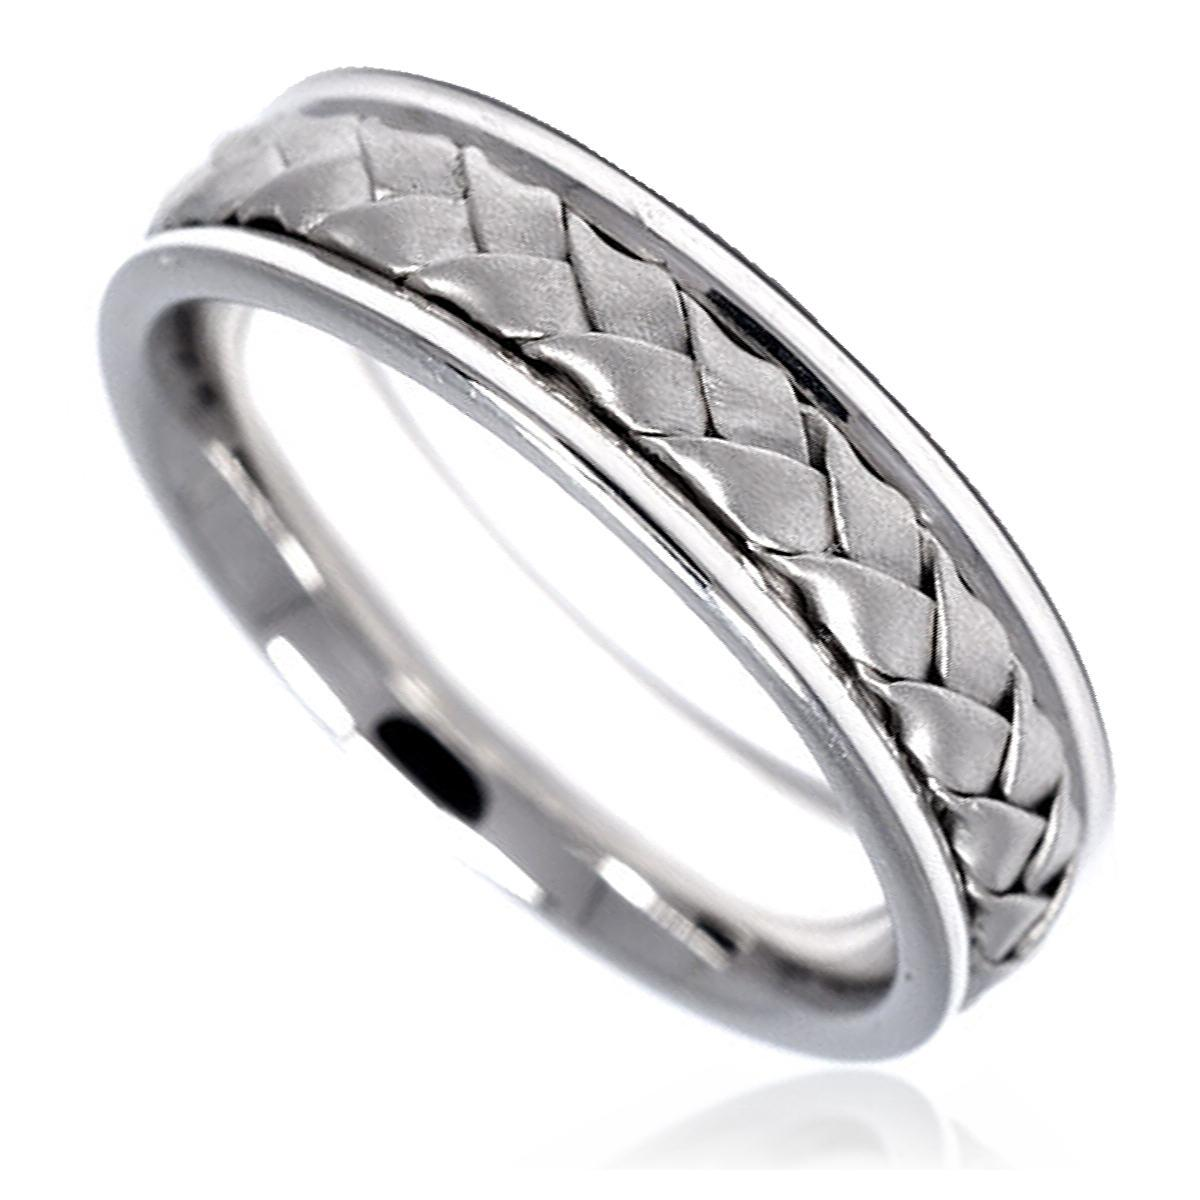 14K WHITE GOLD MEN LADY WEDDING BAND BRAIDED DESIGN 6MM   eBay